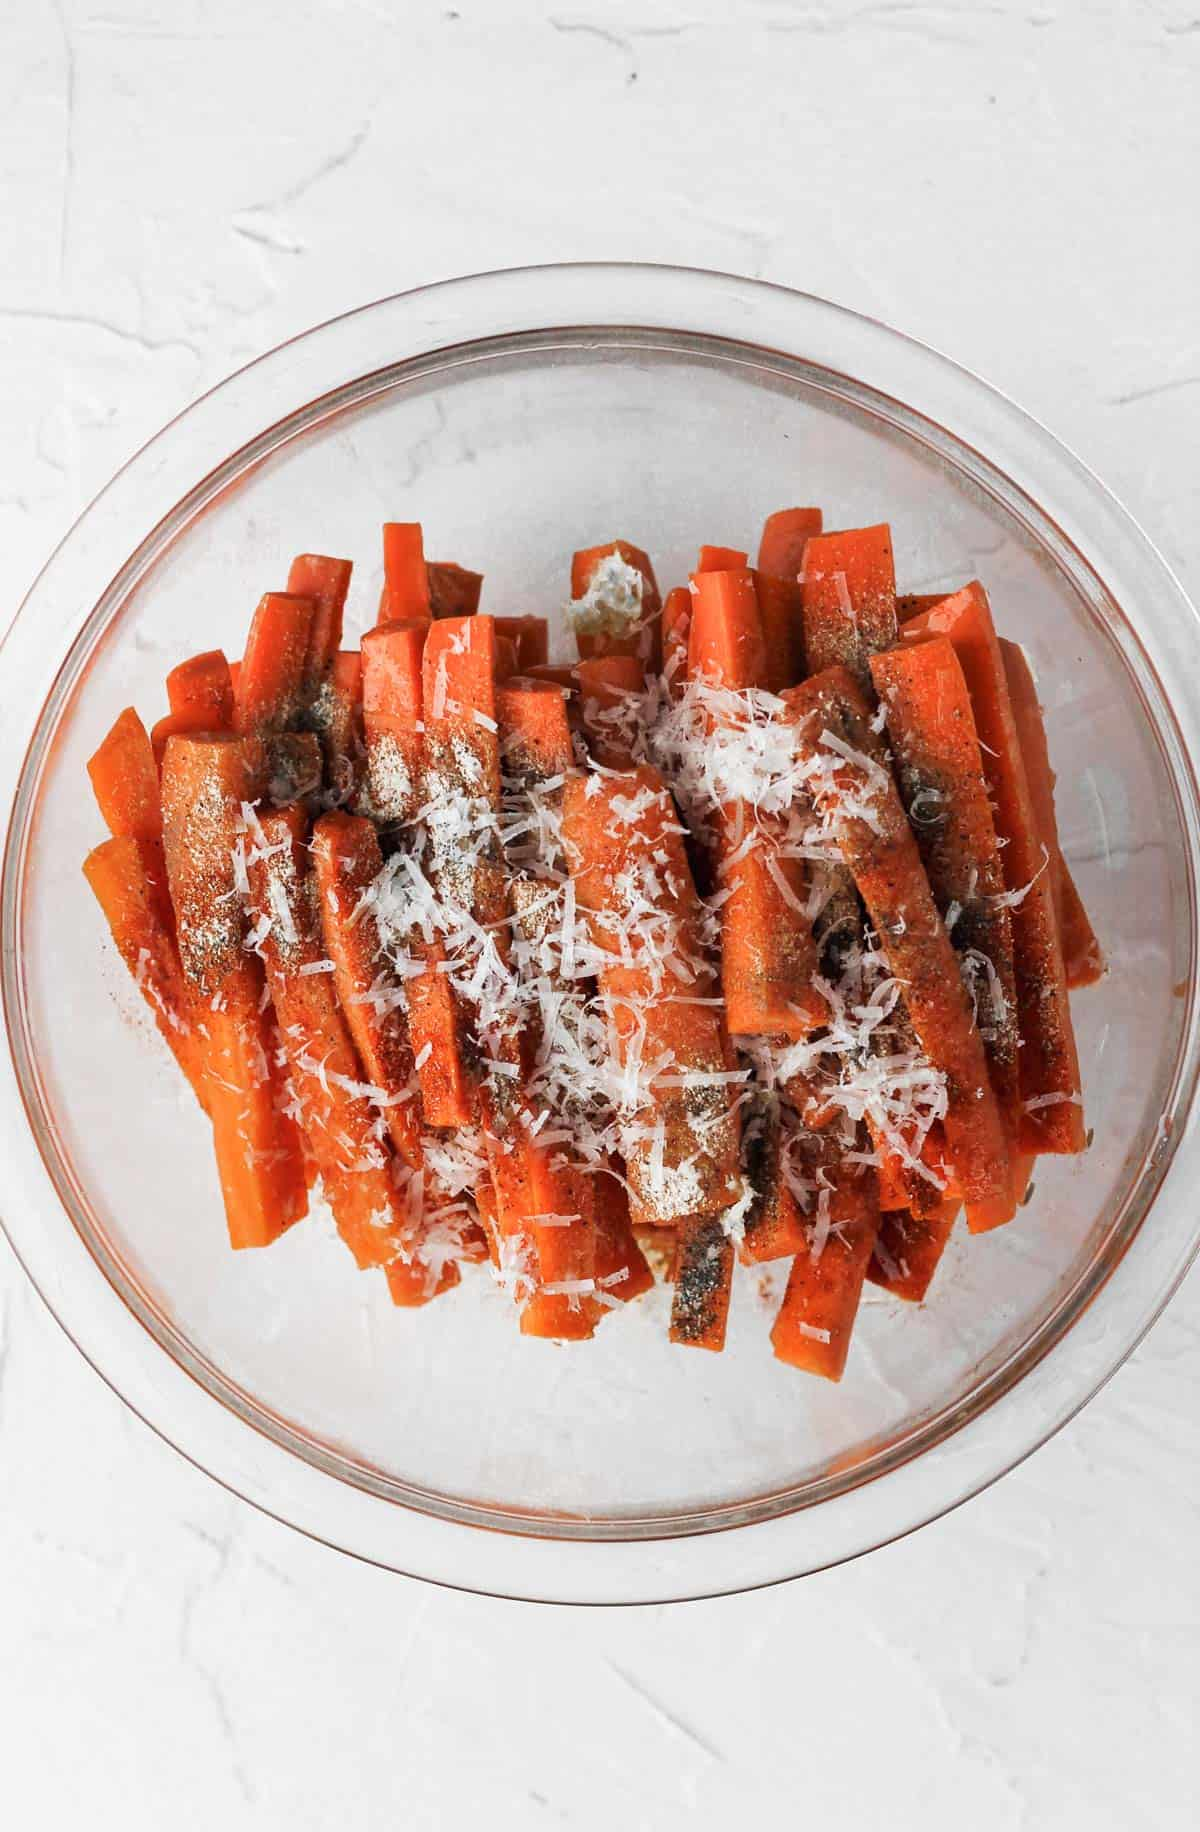 Cut carrots in a glass bowl topped with seasonings.